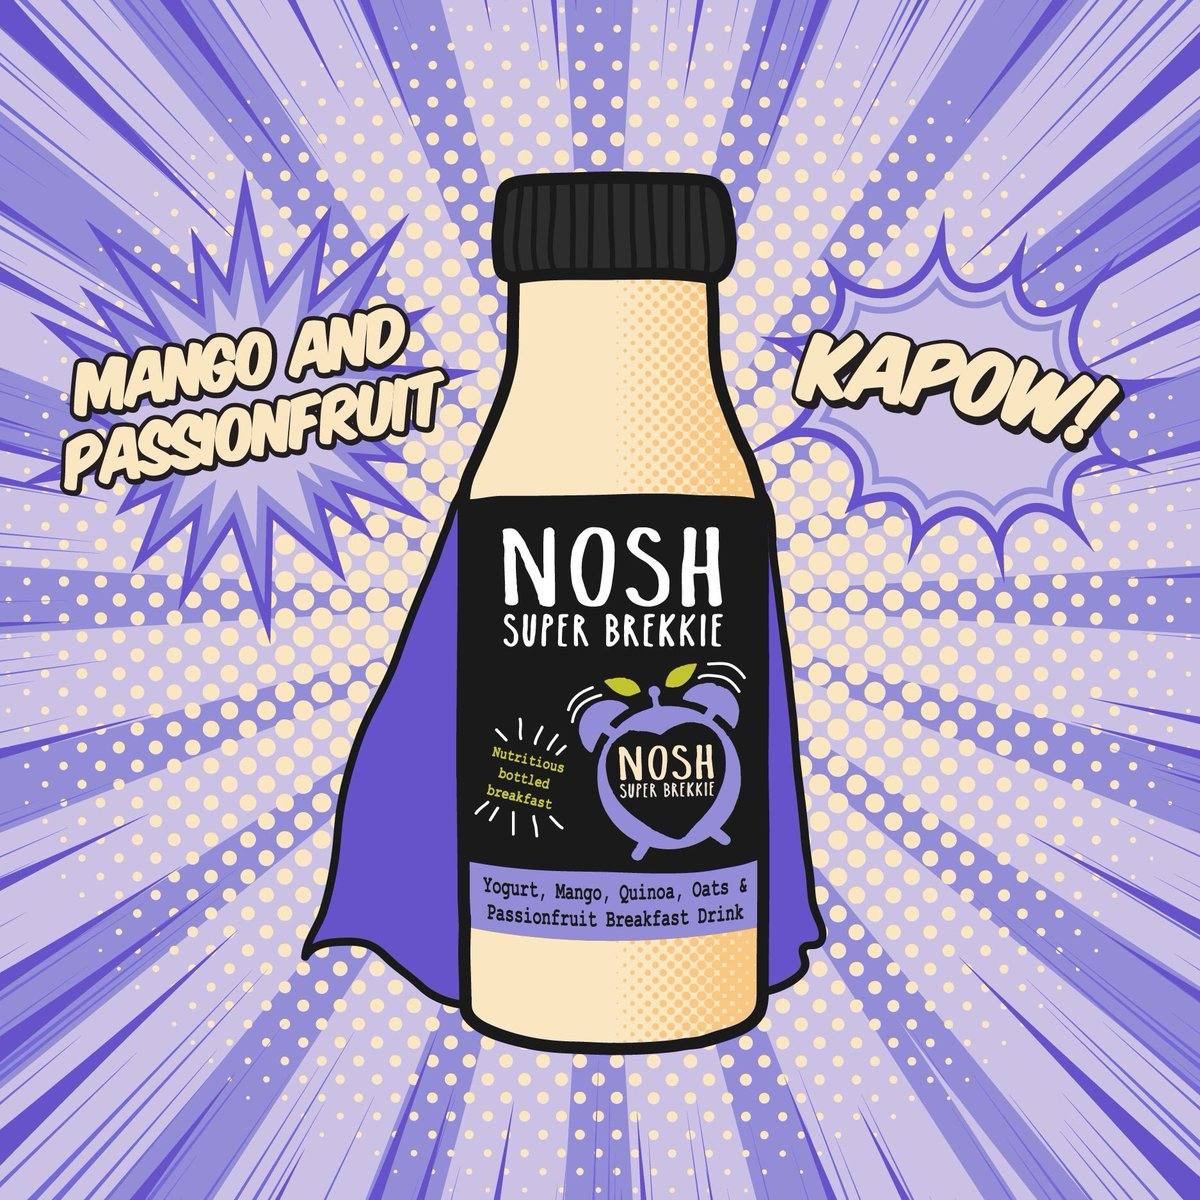 Nosh Drinks (@NoshDrinks)